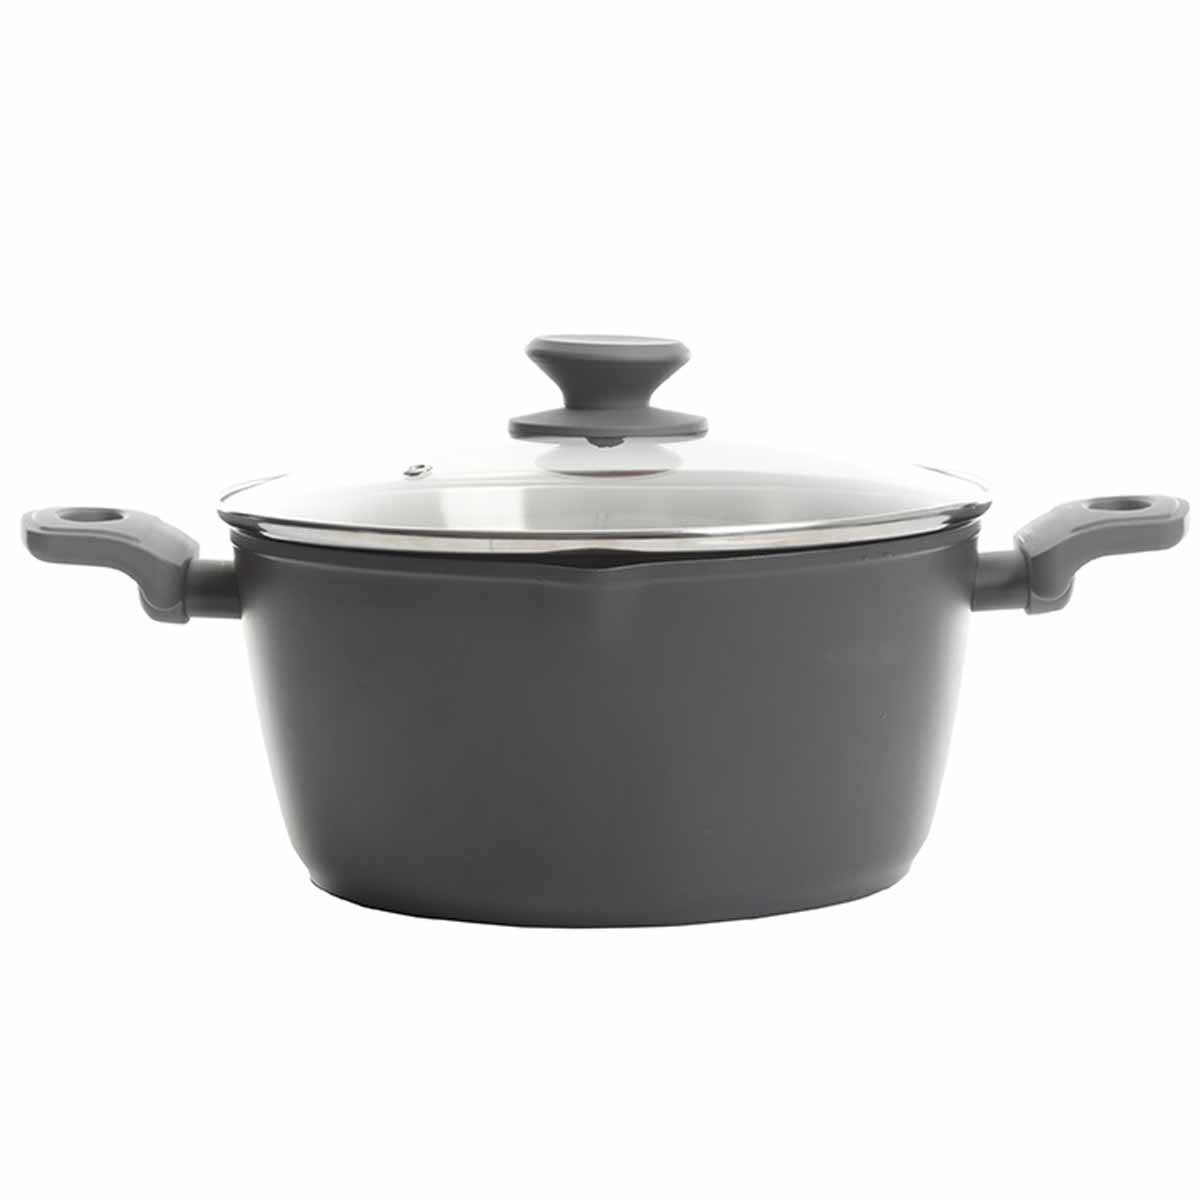 Nonstick Aluminum Dutch Oven with Lid